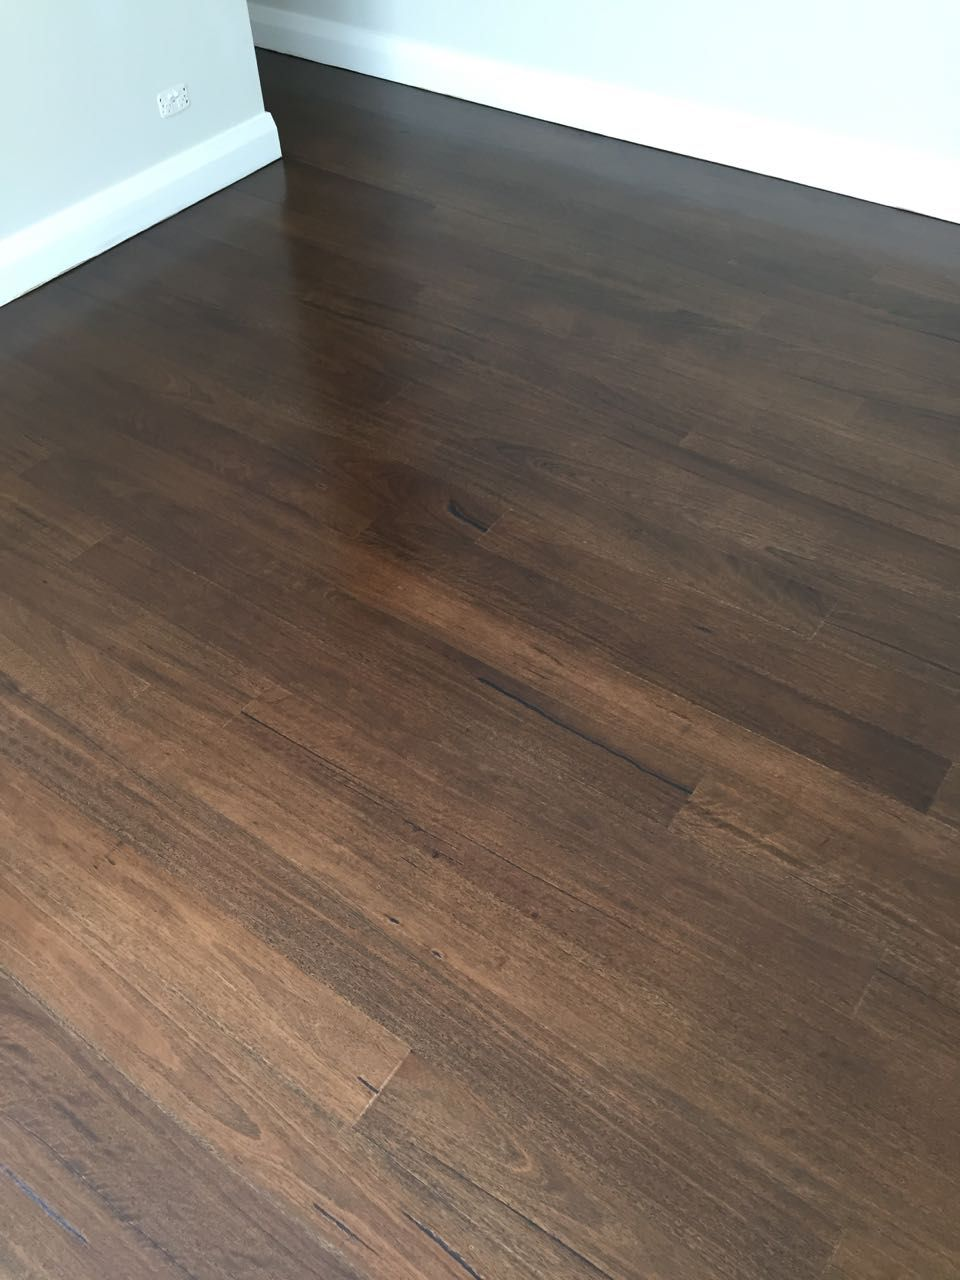 Blackbutt Stained Japan Brown 4 Of 5 Painted Wood Floors Hardwood Floor Colors House Flooring